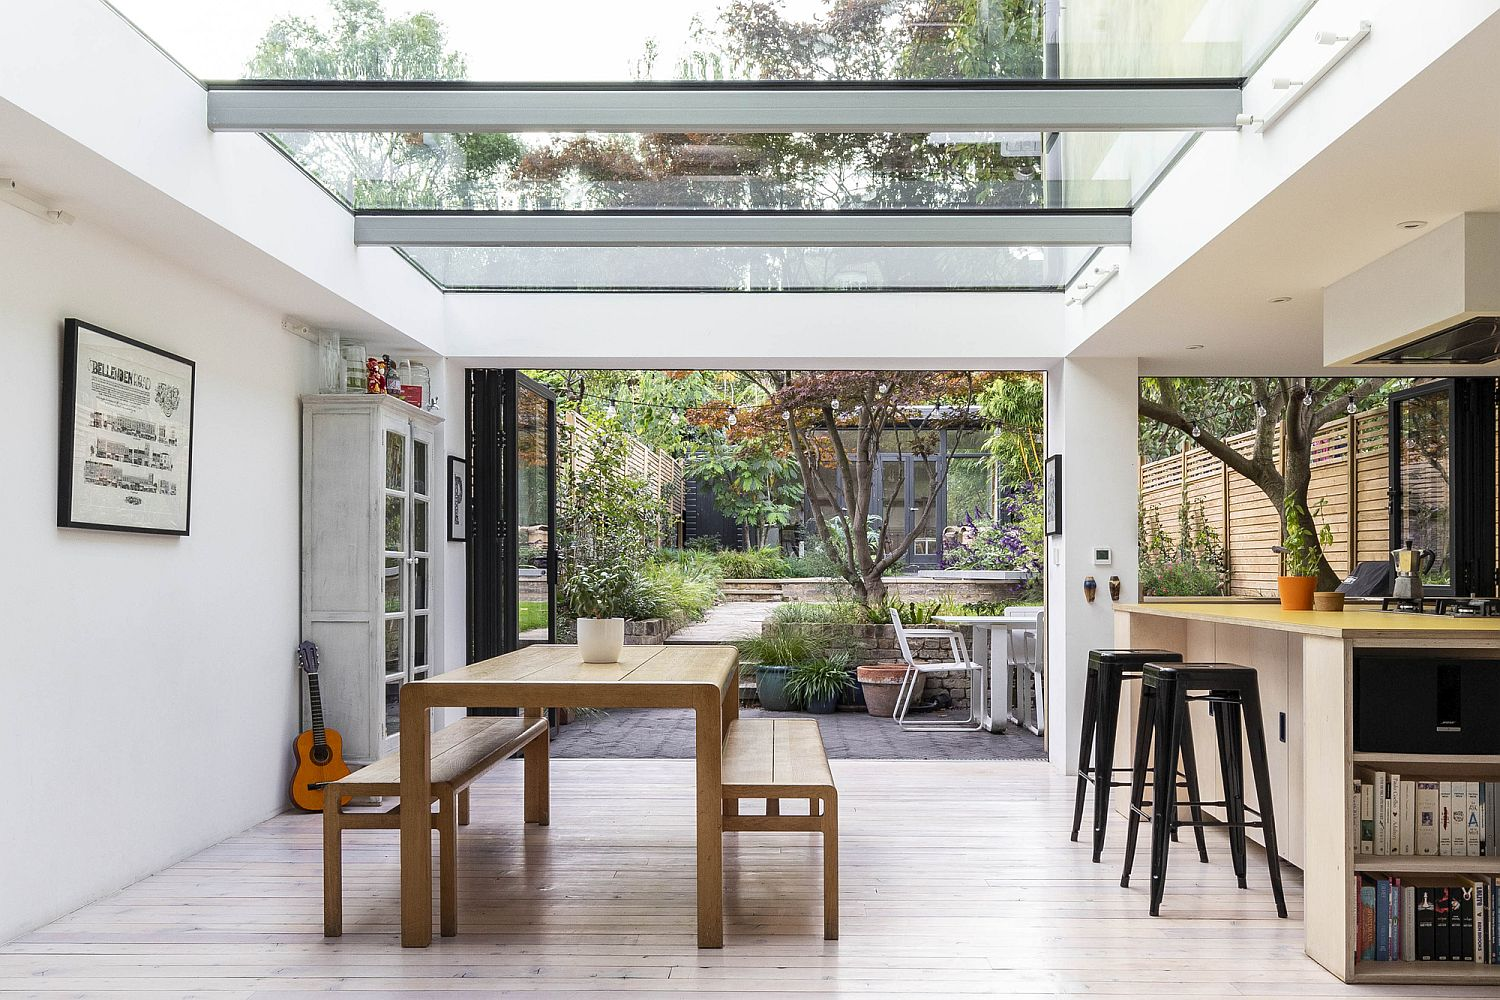 Skylights and glass walls bring light into the renovated home